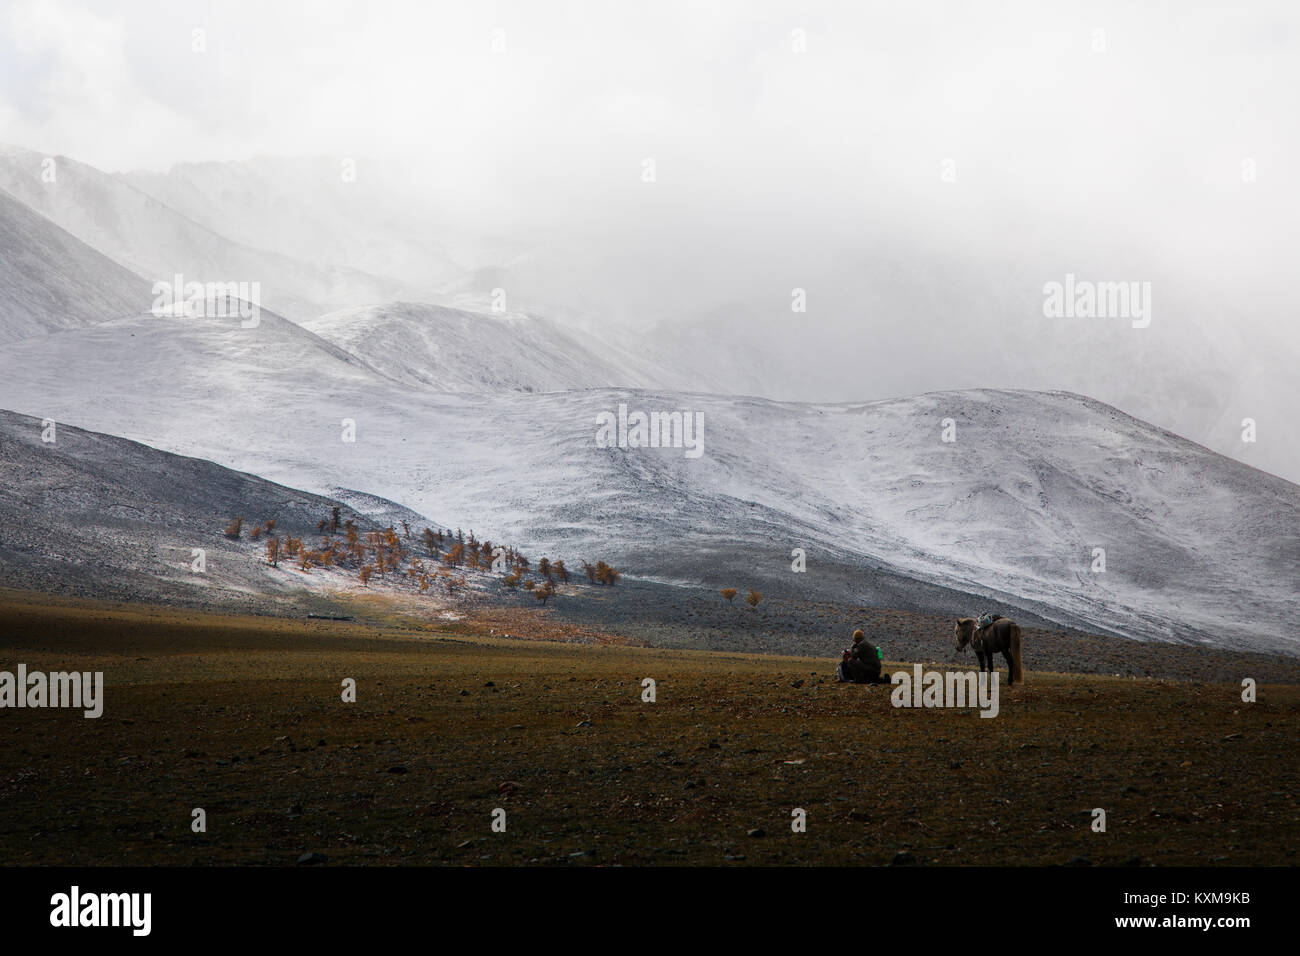 Goat keeper shepherd horse rider resting Mongolian winter snowy mountains - Stock Image